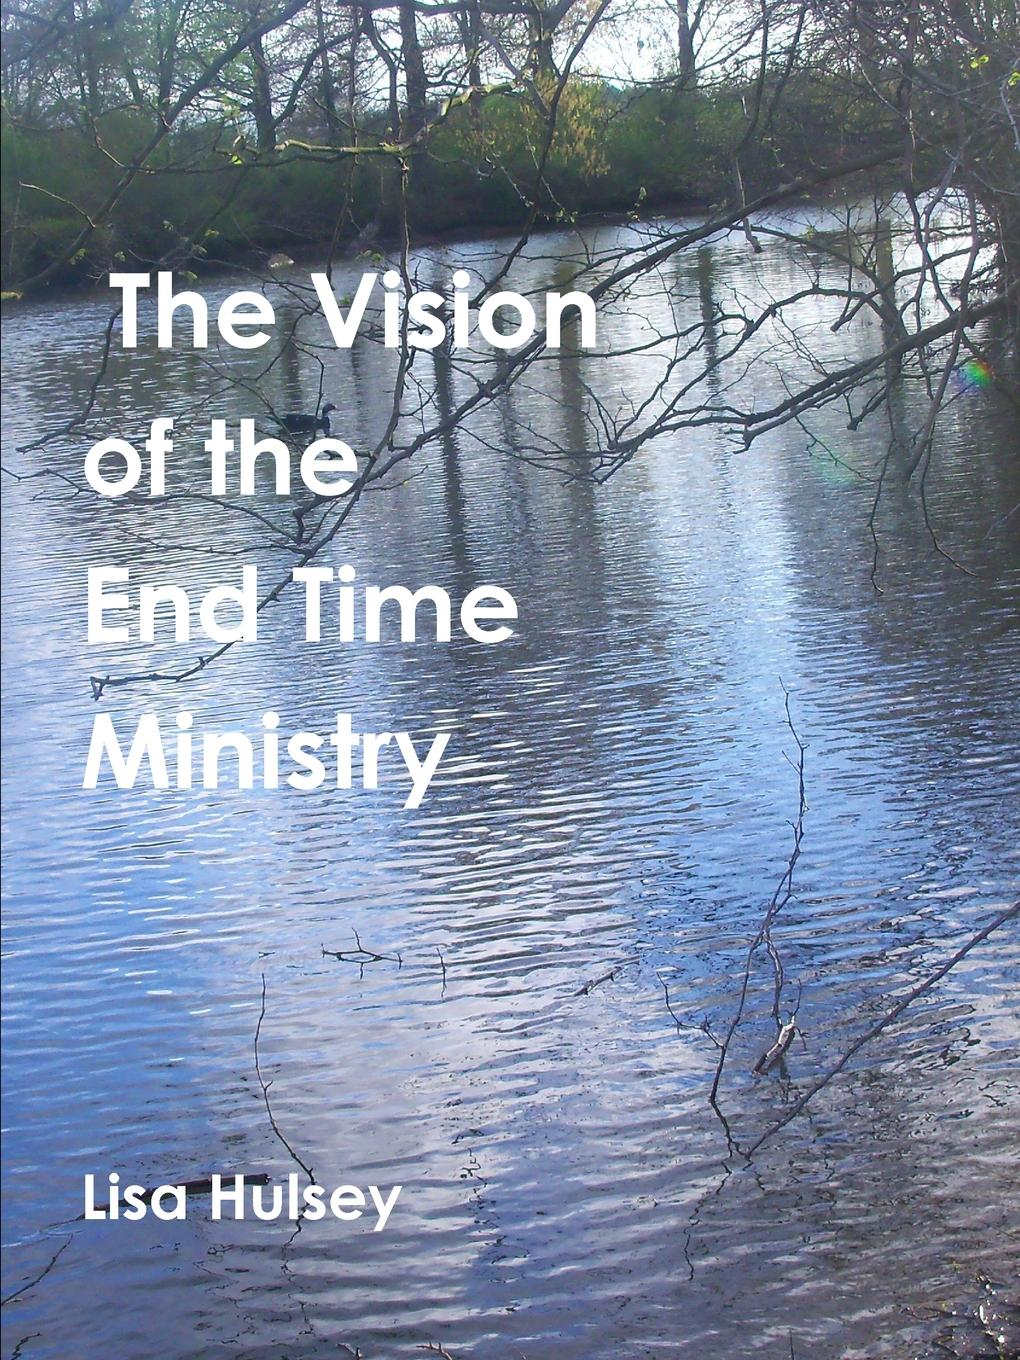 Lisa Hulsey The Vision of the End Time Ministry the eye of the world the wheel of time book 2 chinese edition 400 page